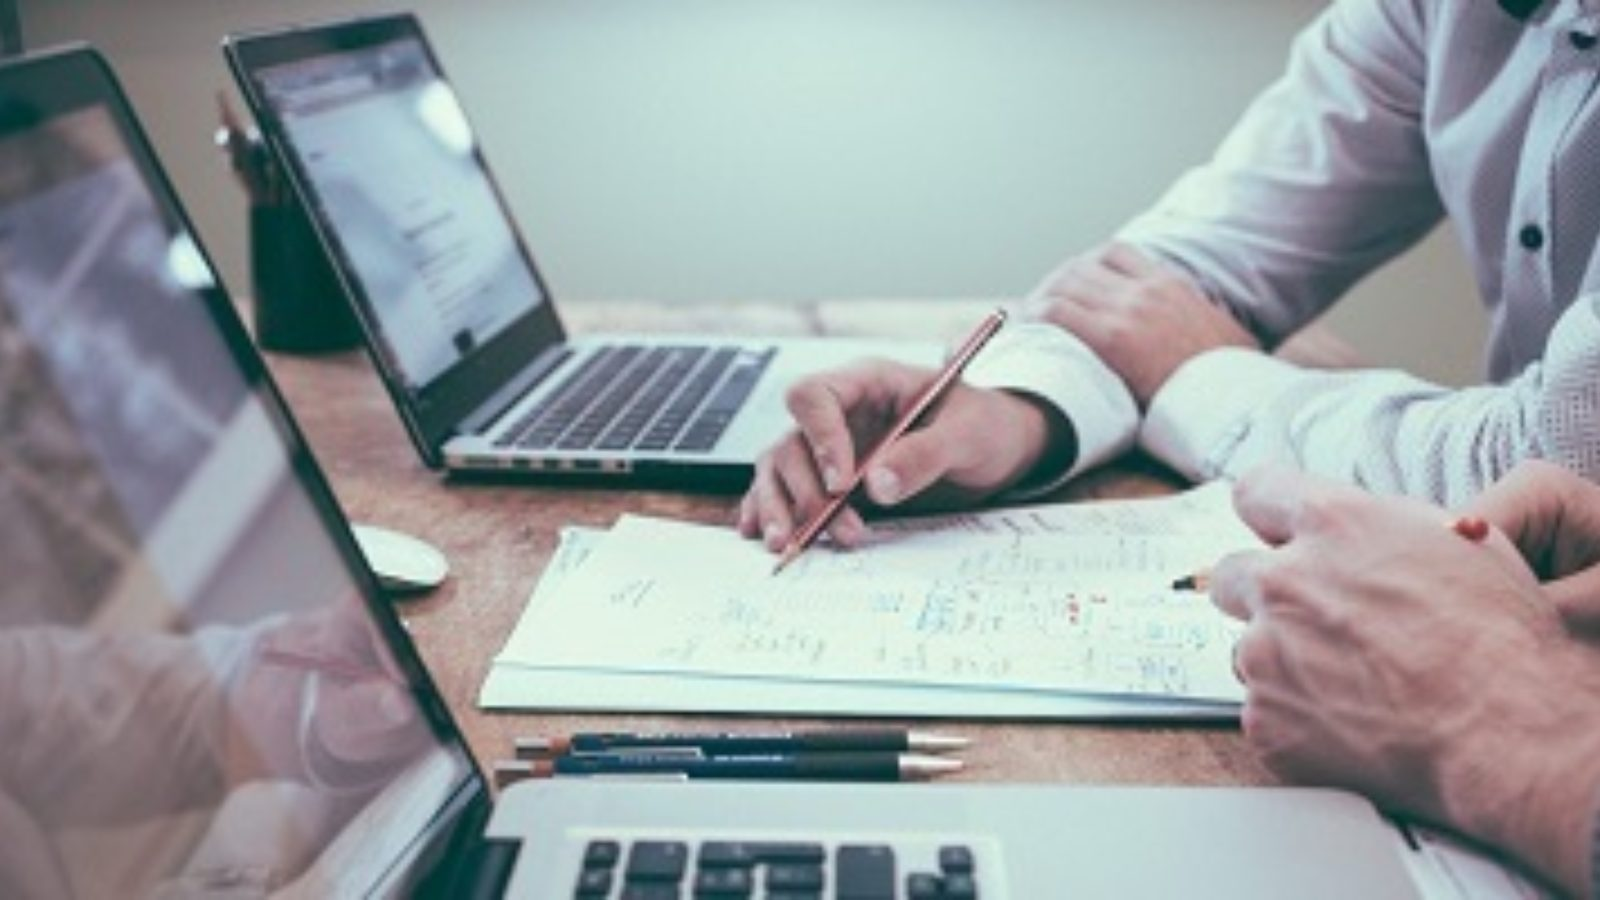 Practical Contract Management: Learn the skills needed to contracts are value-adding for your business